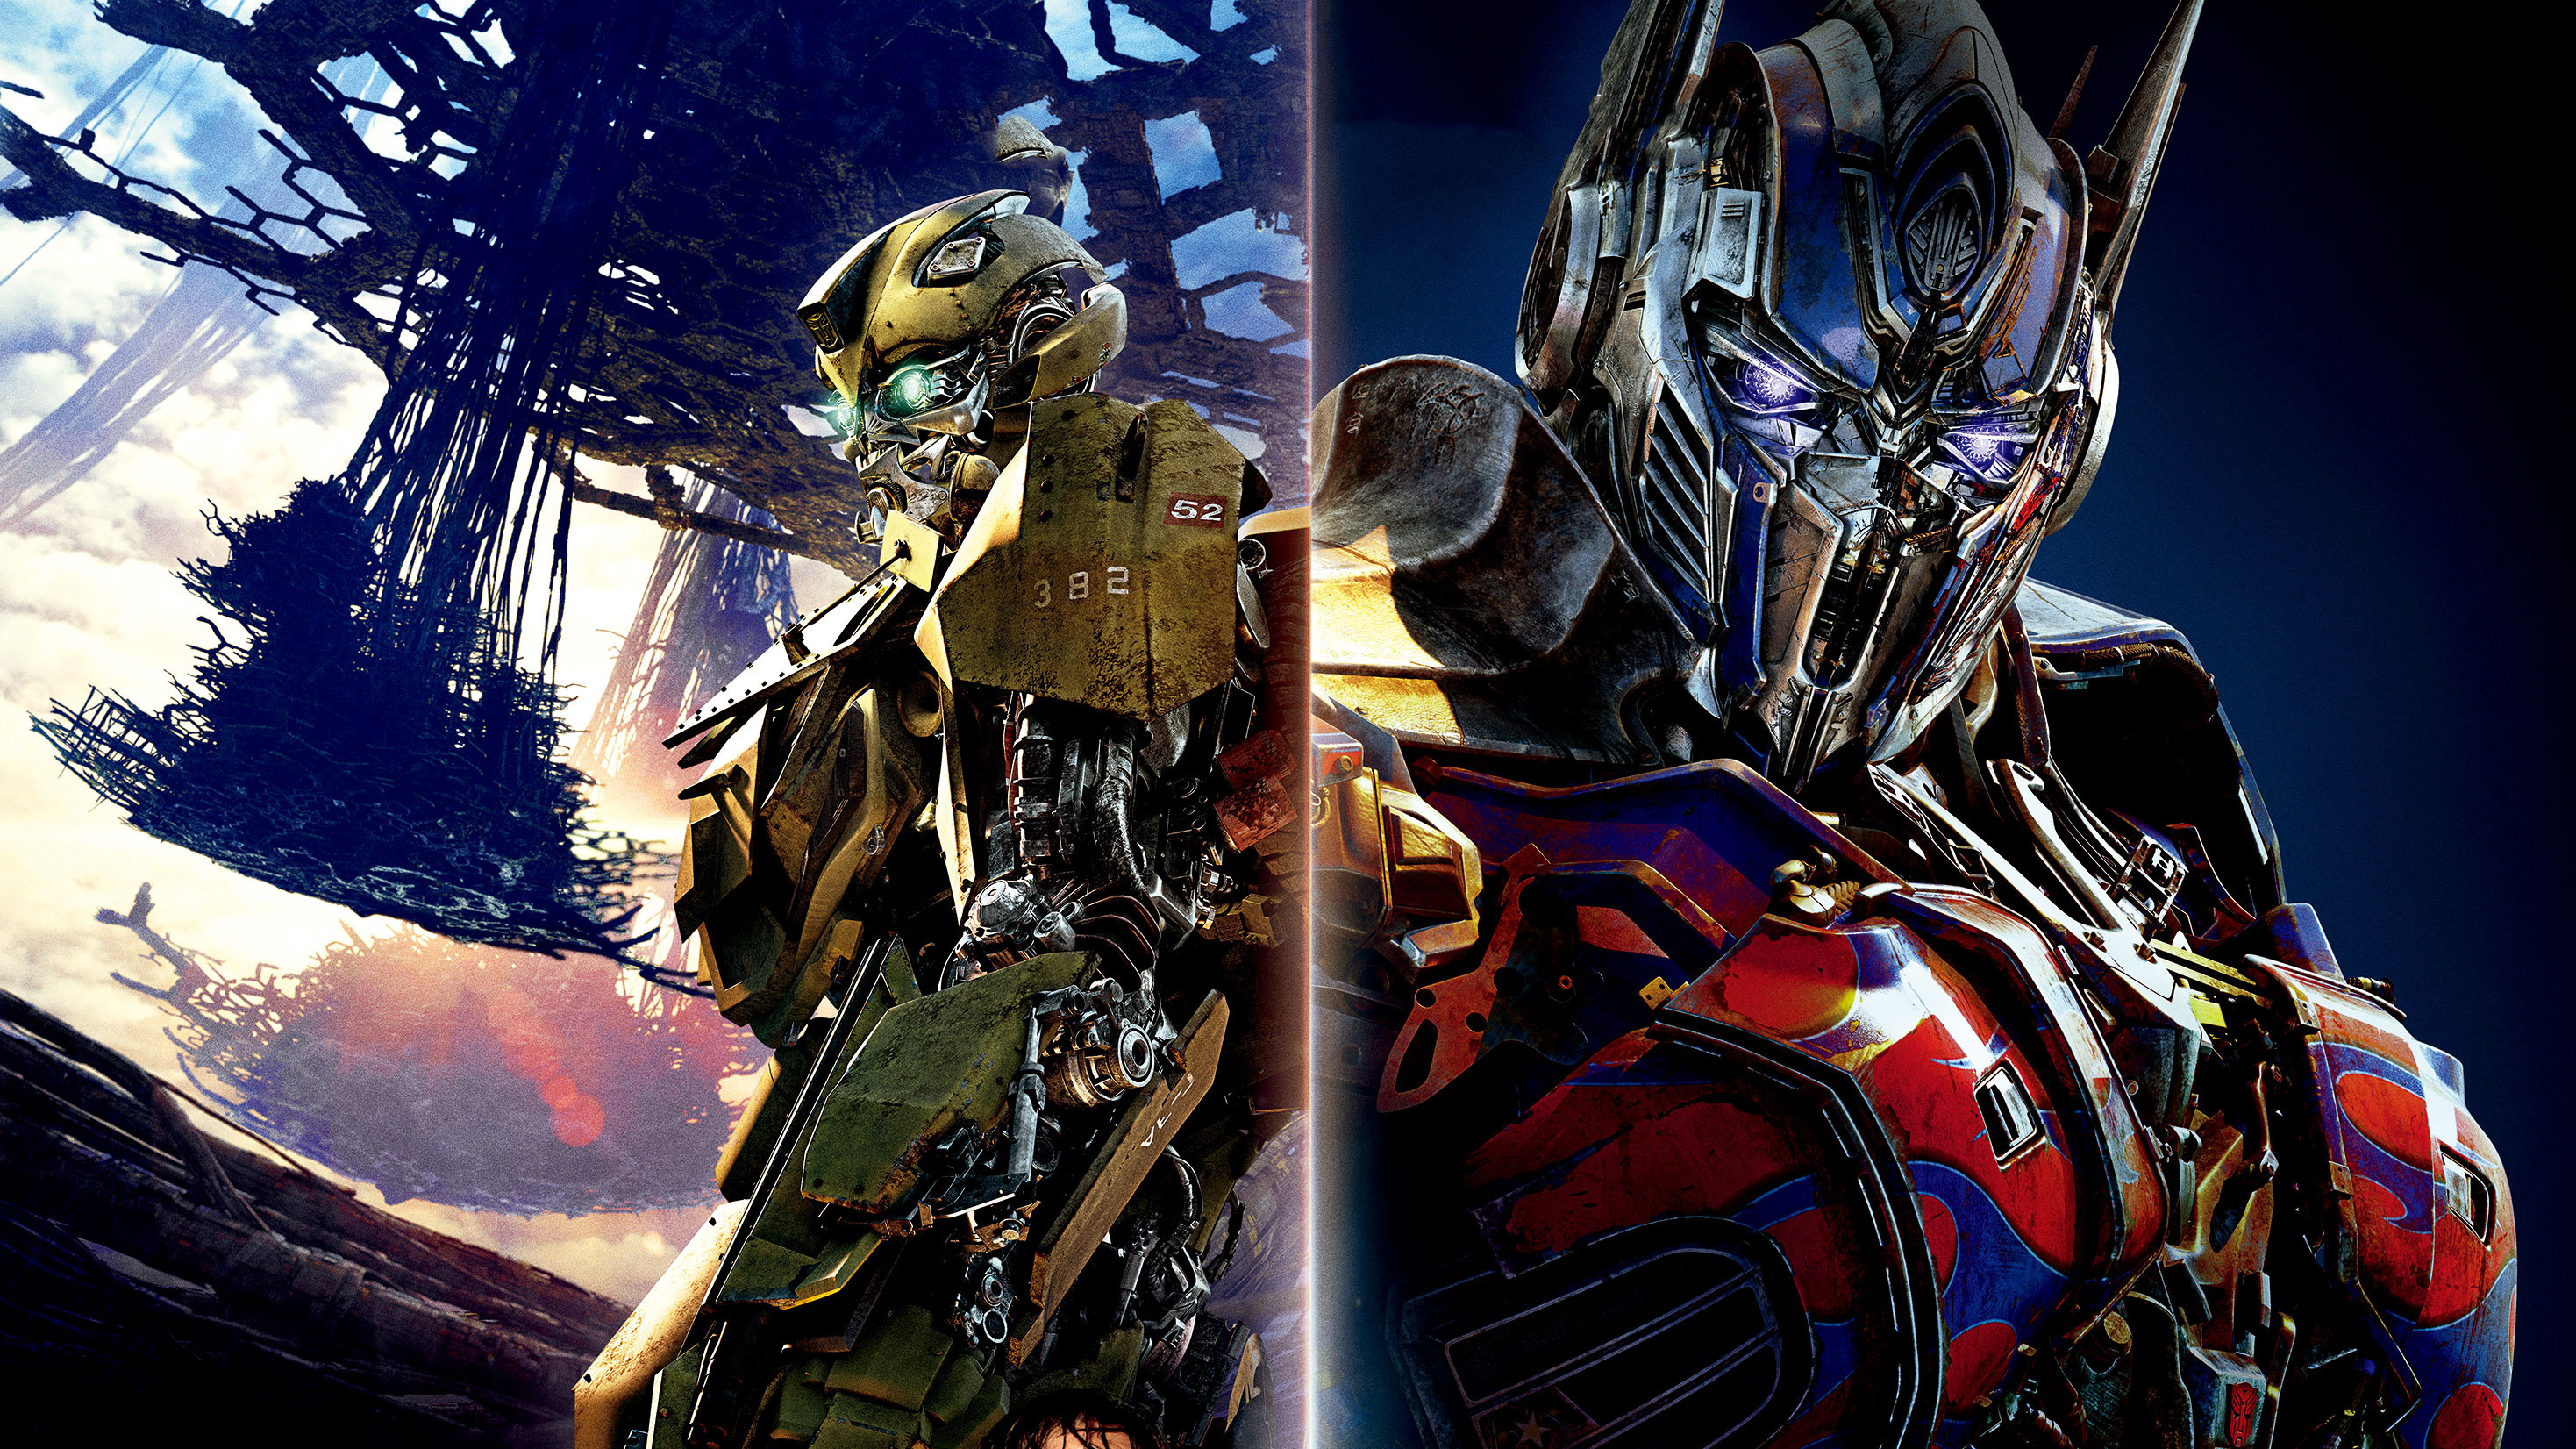 2937x1652 Bumblebee vs Optimus Prime